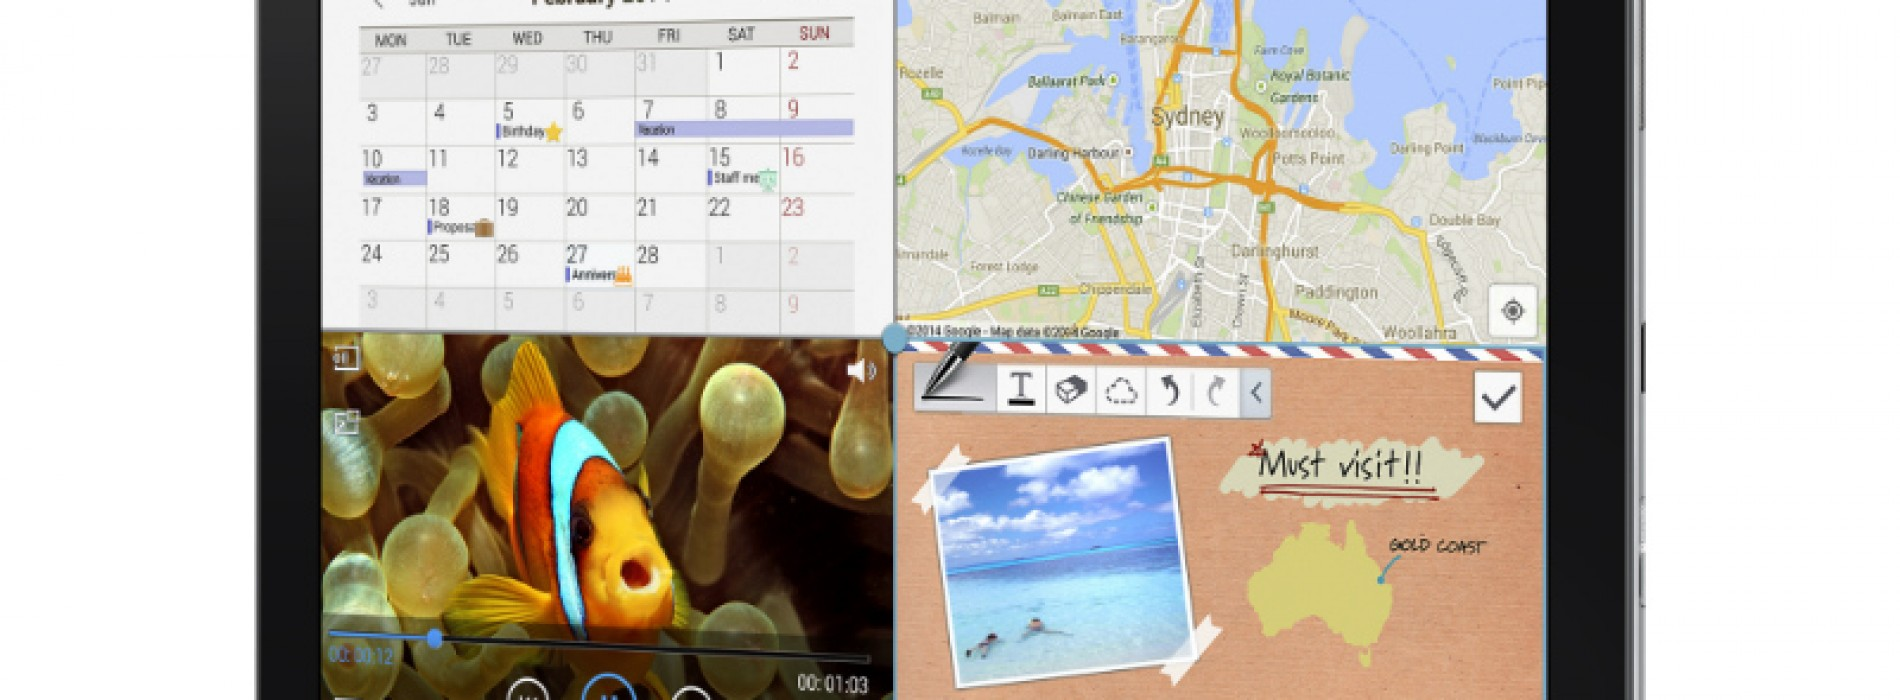 Samsung Galaxy Note Pro 12.2 arrives March 9